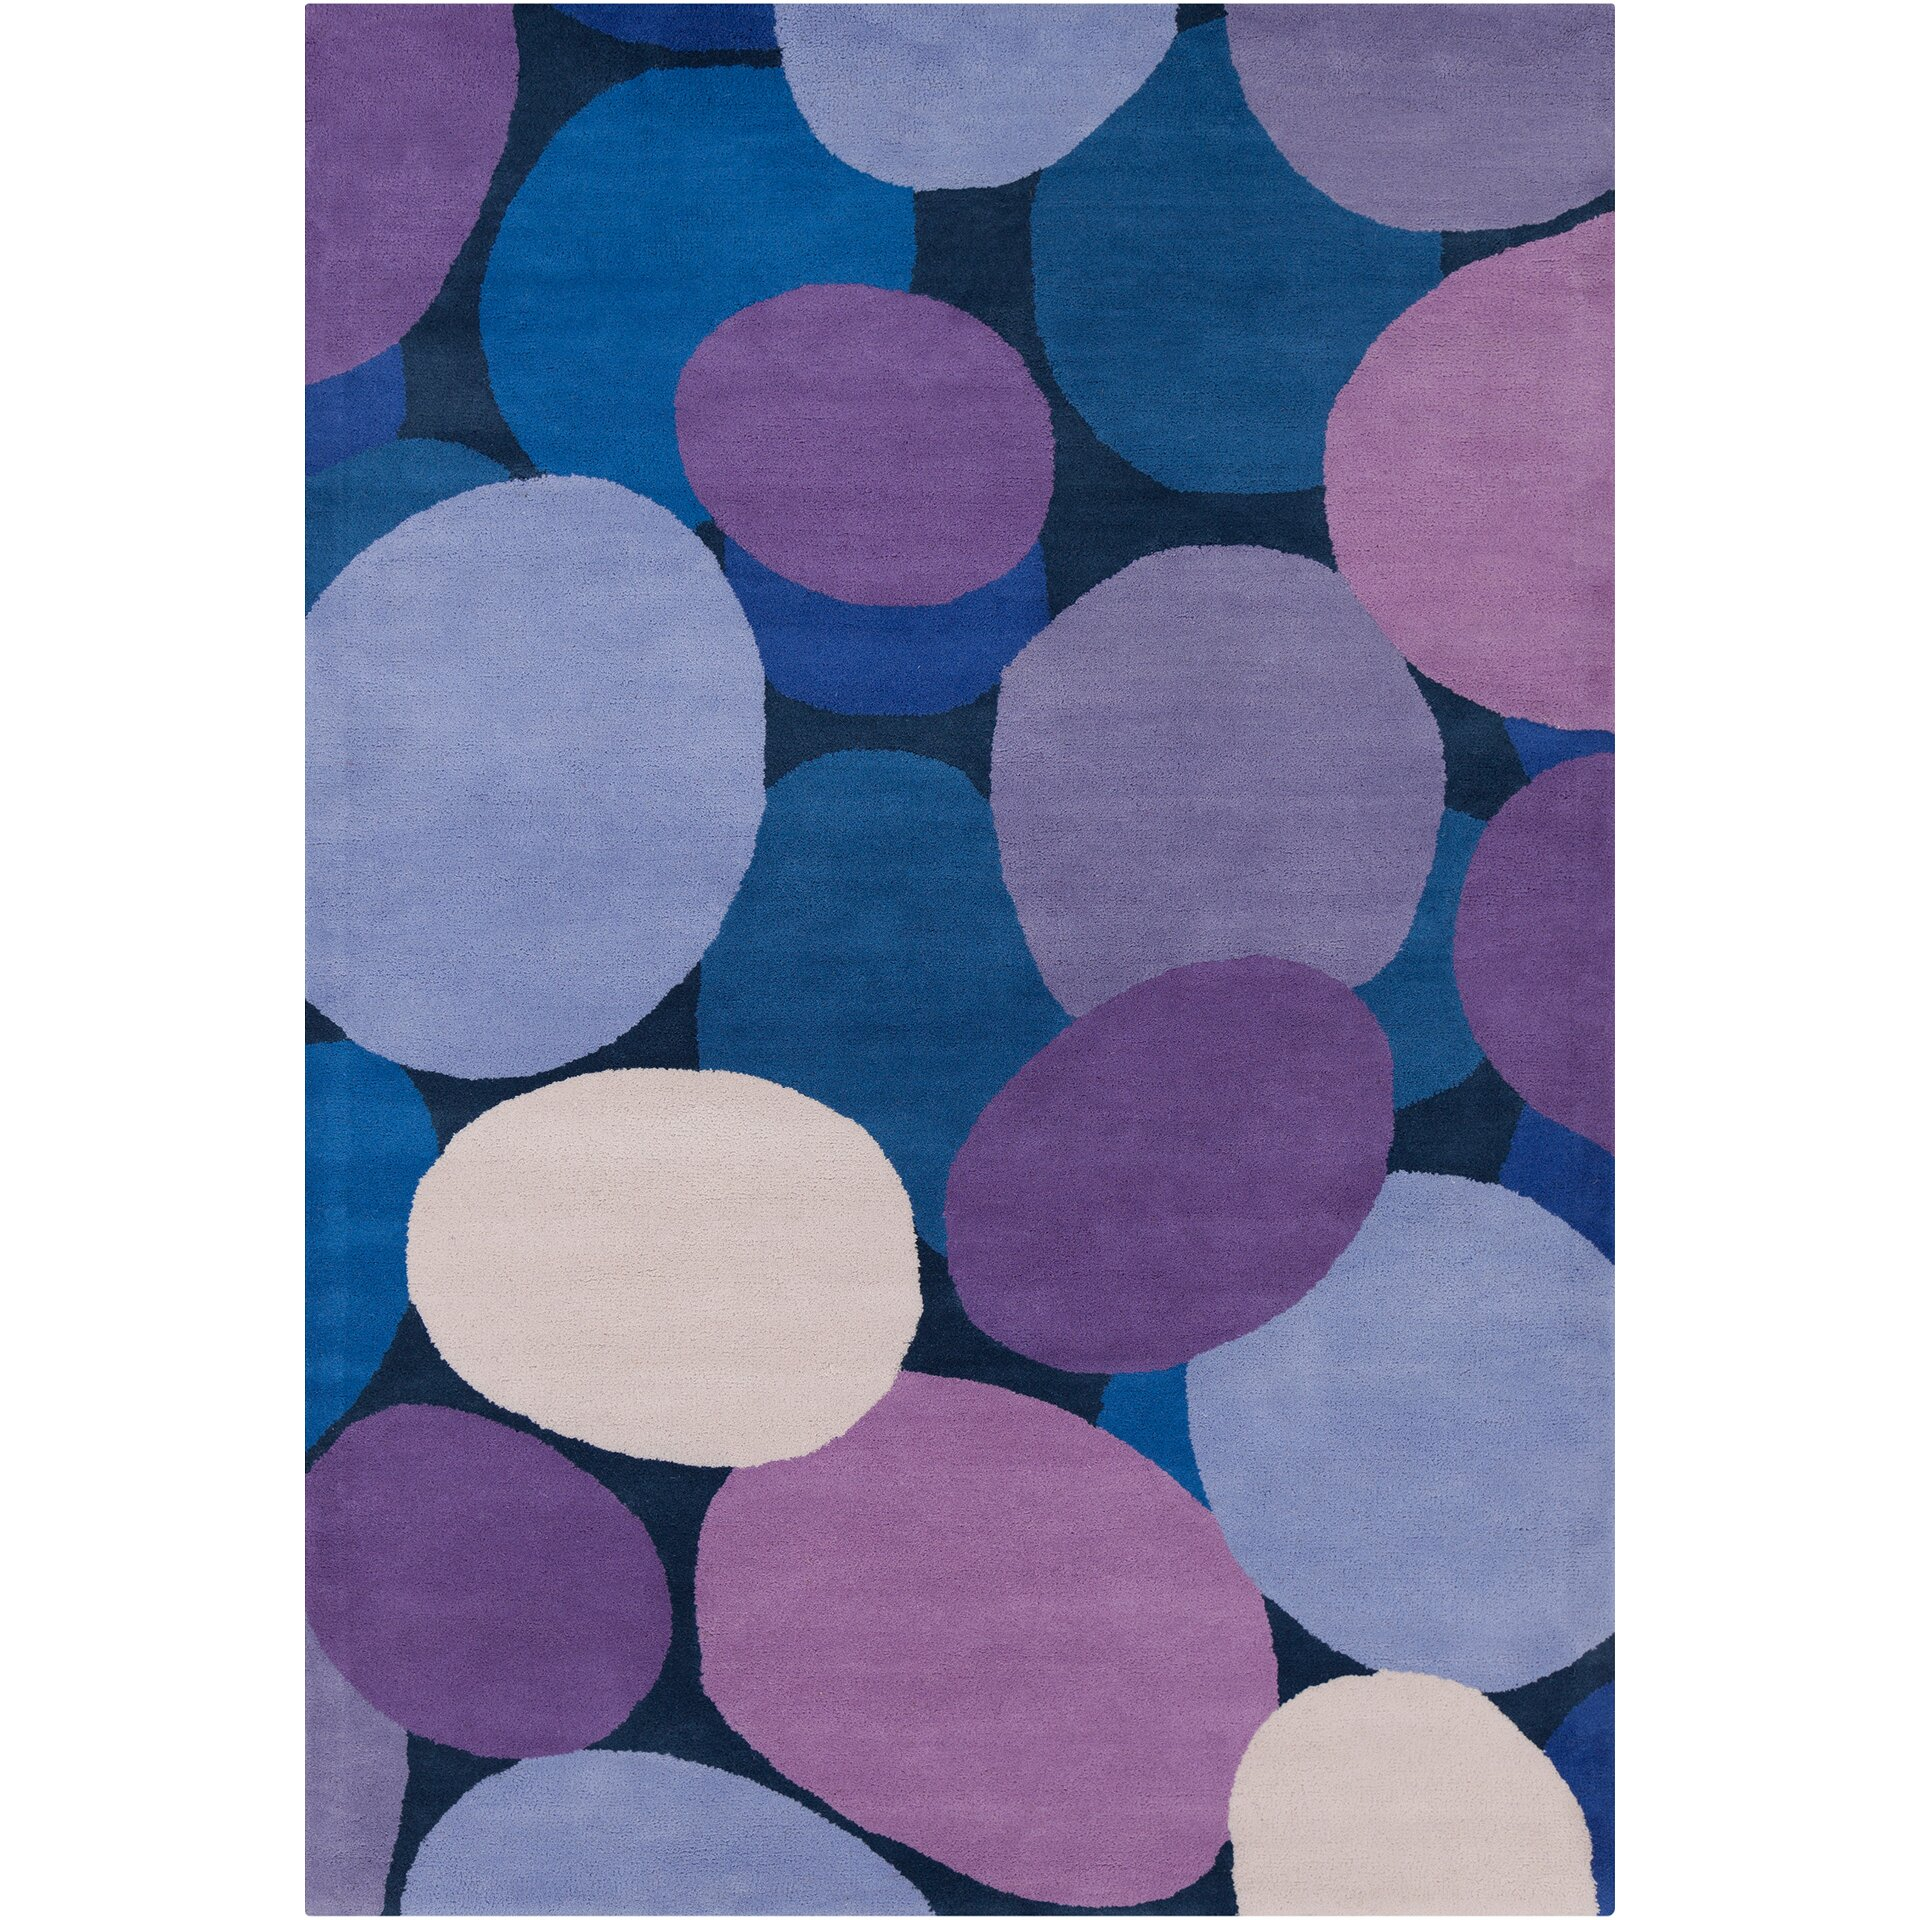 Chandra Stella Patterned Contemporary Wool Beige Aqua Area: Stella Patterned Contemporary Wool Purple/Blue Area Rug